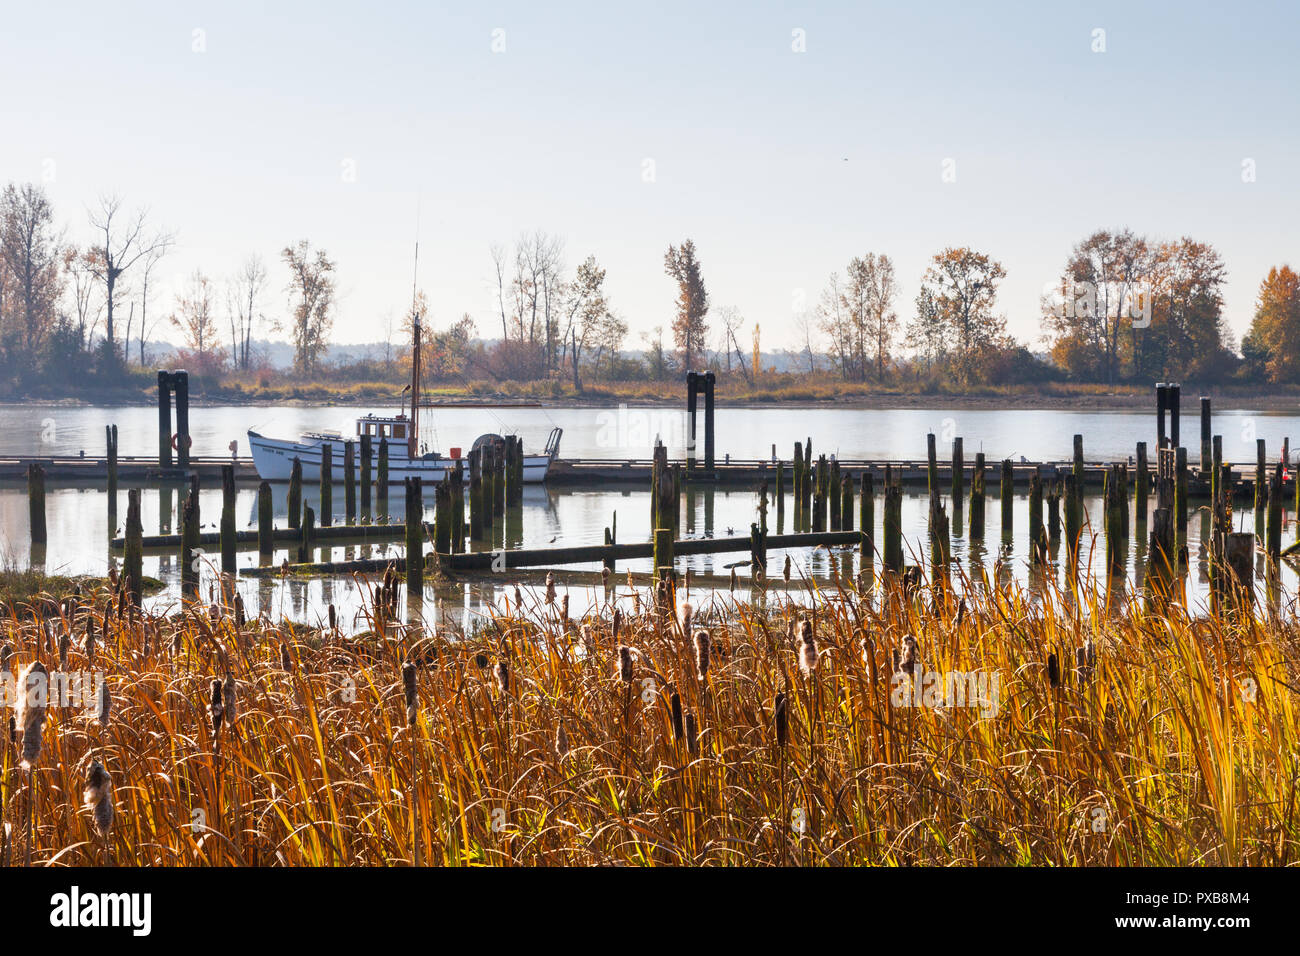 Autumn colours in the reeds by the historic Britannia Shipyard in Steveston British Columbia - Stock Image